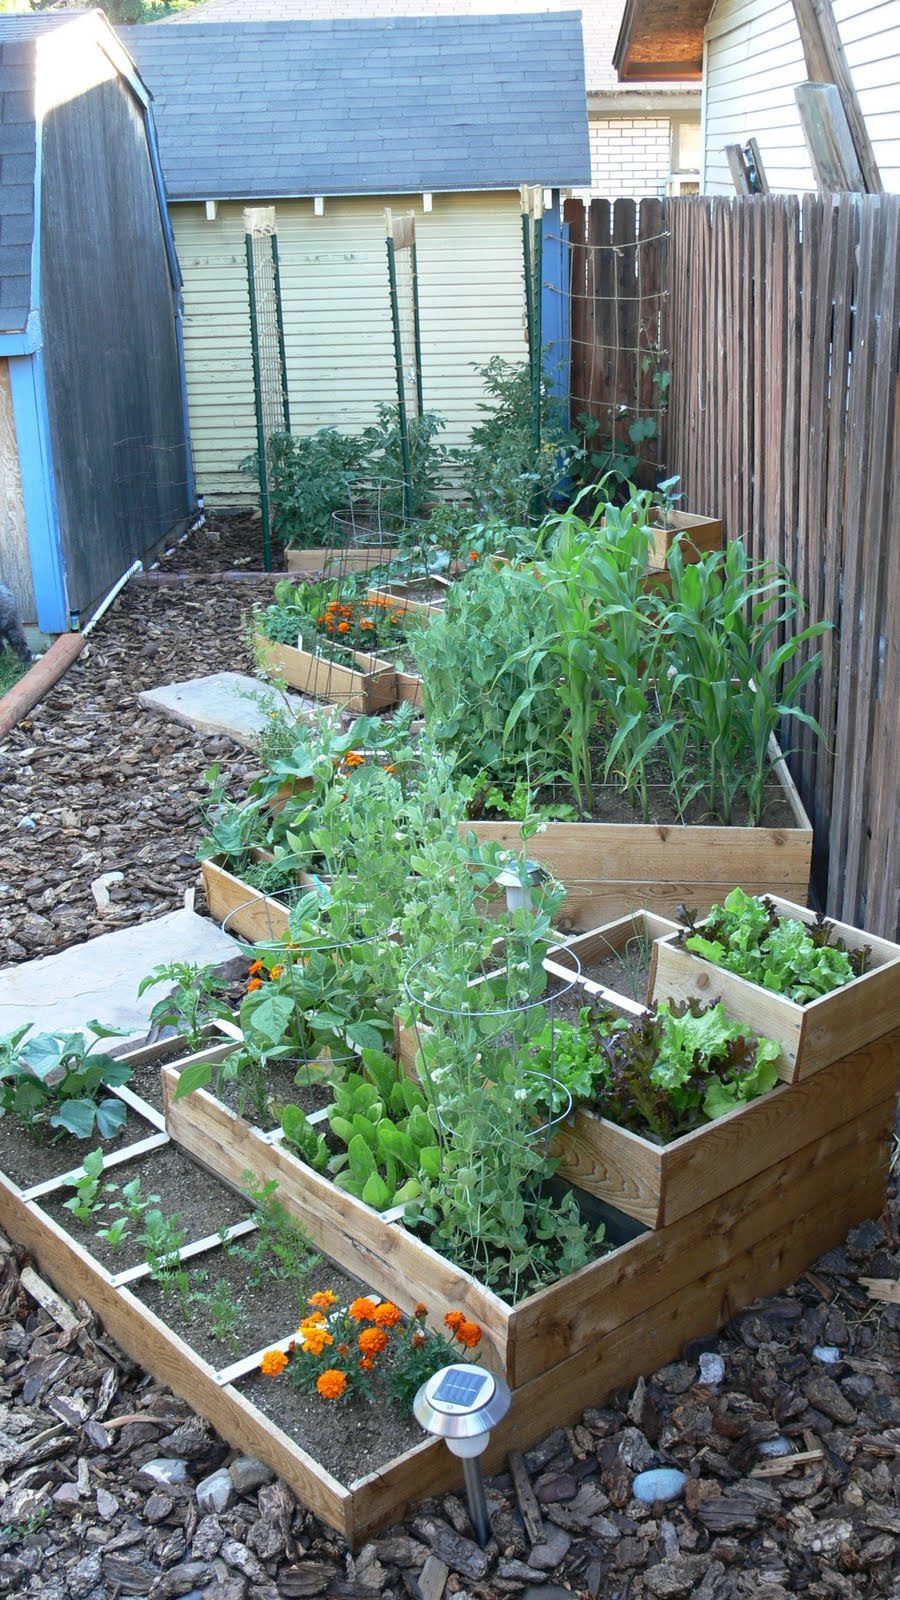 Our Square Foot Garden